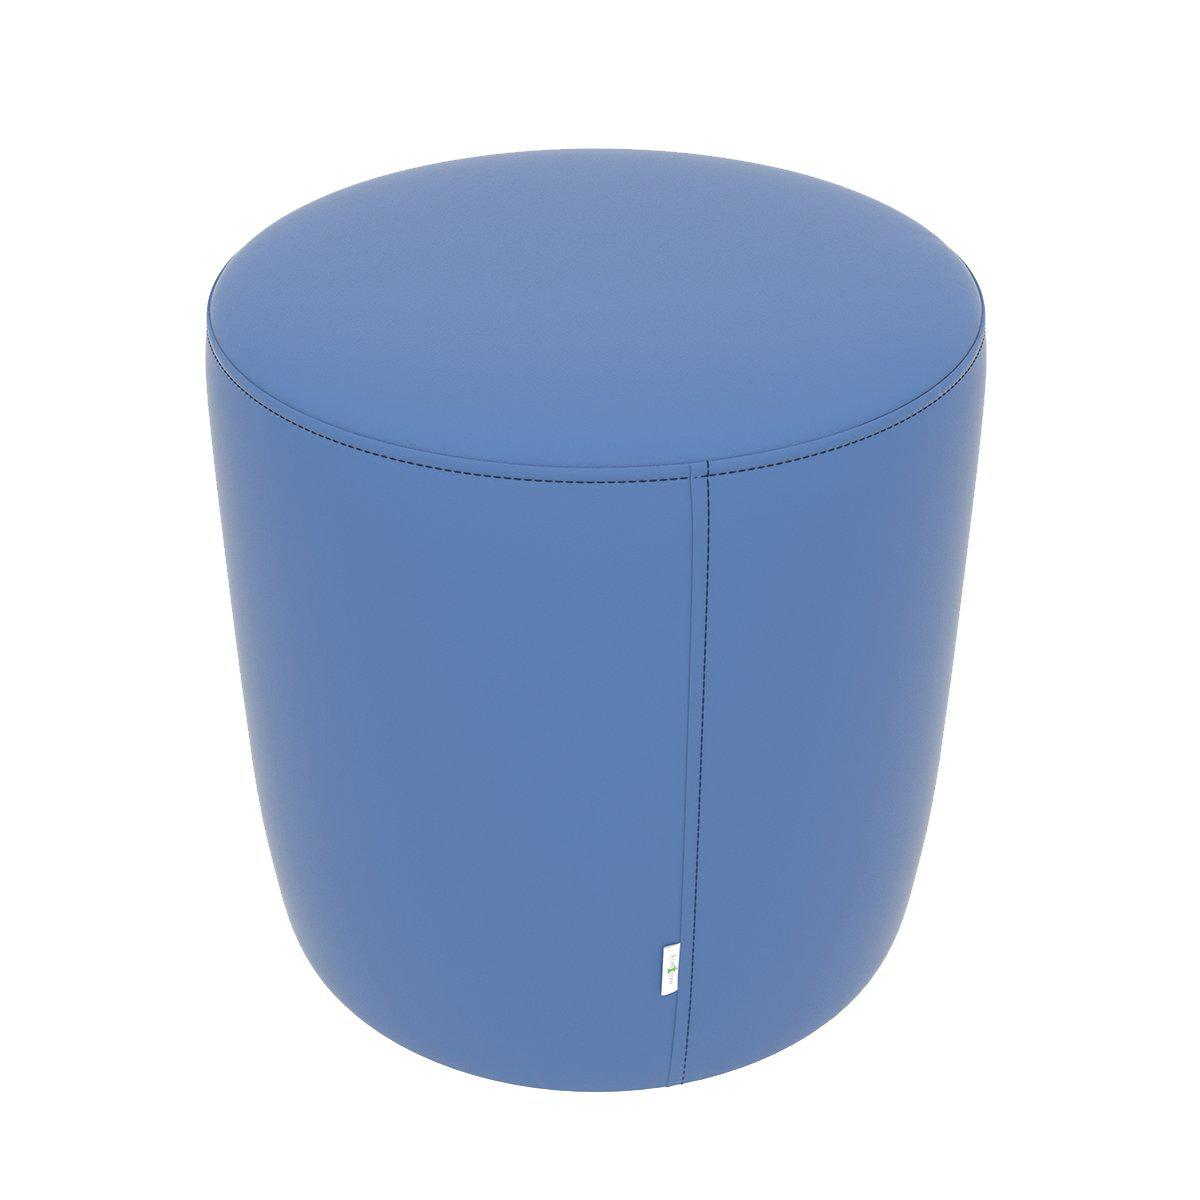 "Fomcore Ottoman Series 18"" Round Ottoman with 100% ALL-FOAM CORE, Antibacterial Vinyl Seat with Patterned Vinyl Sides, LIFETIME WARRANTY"